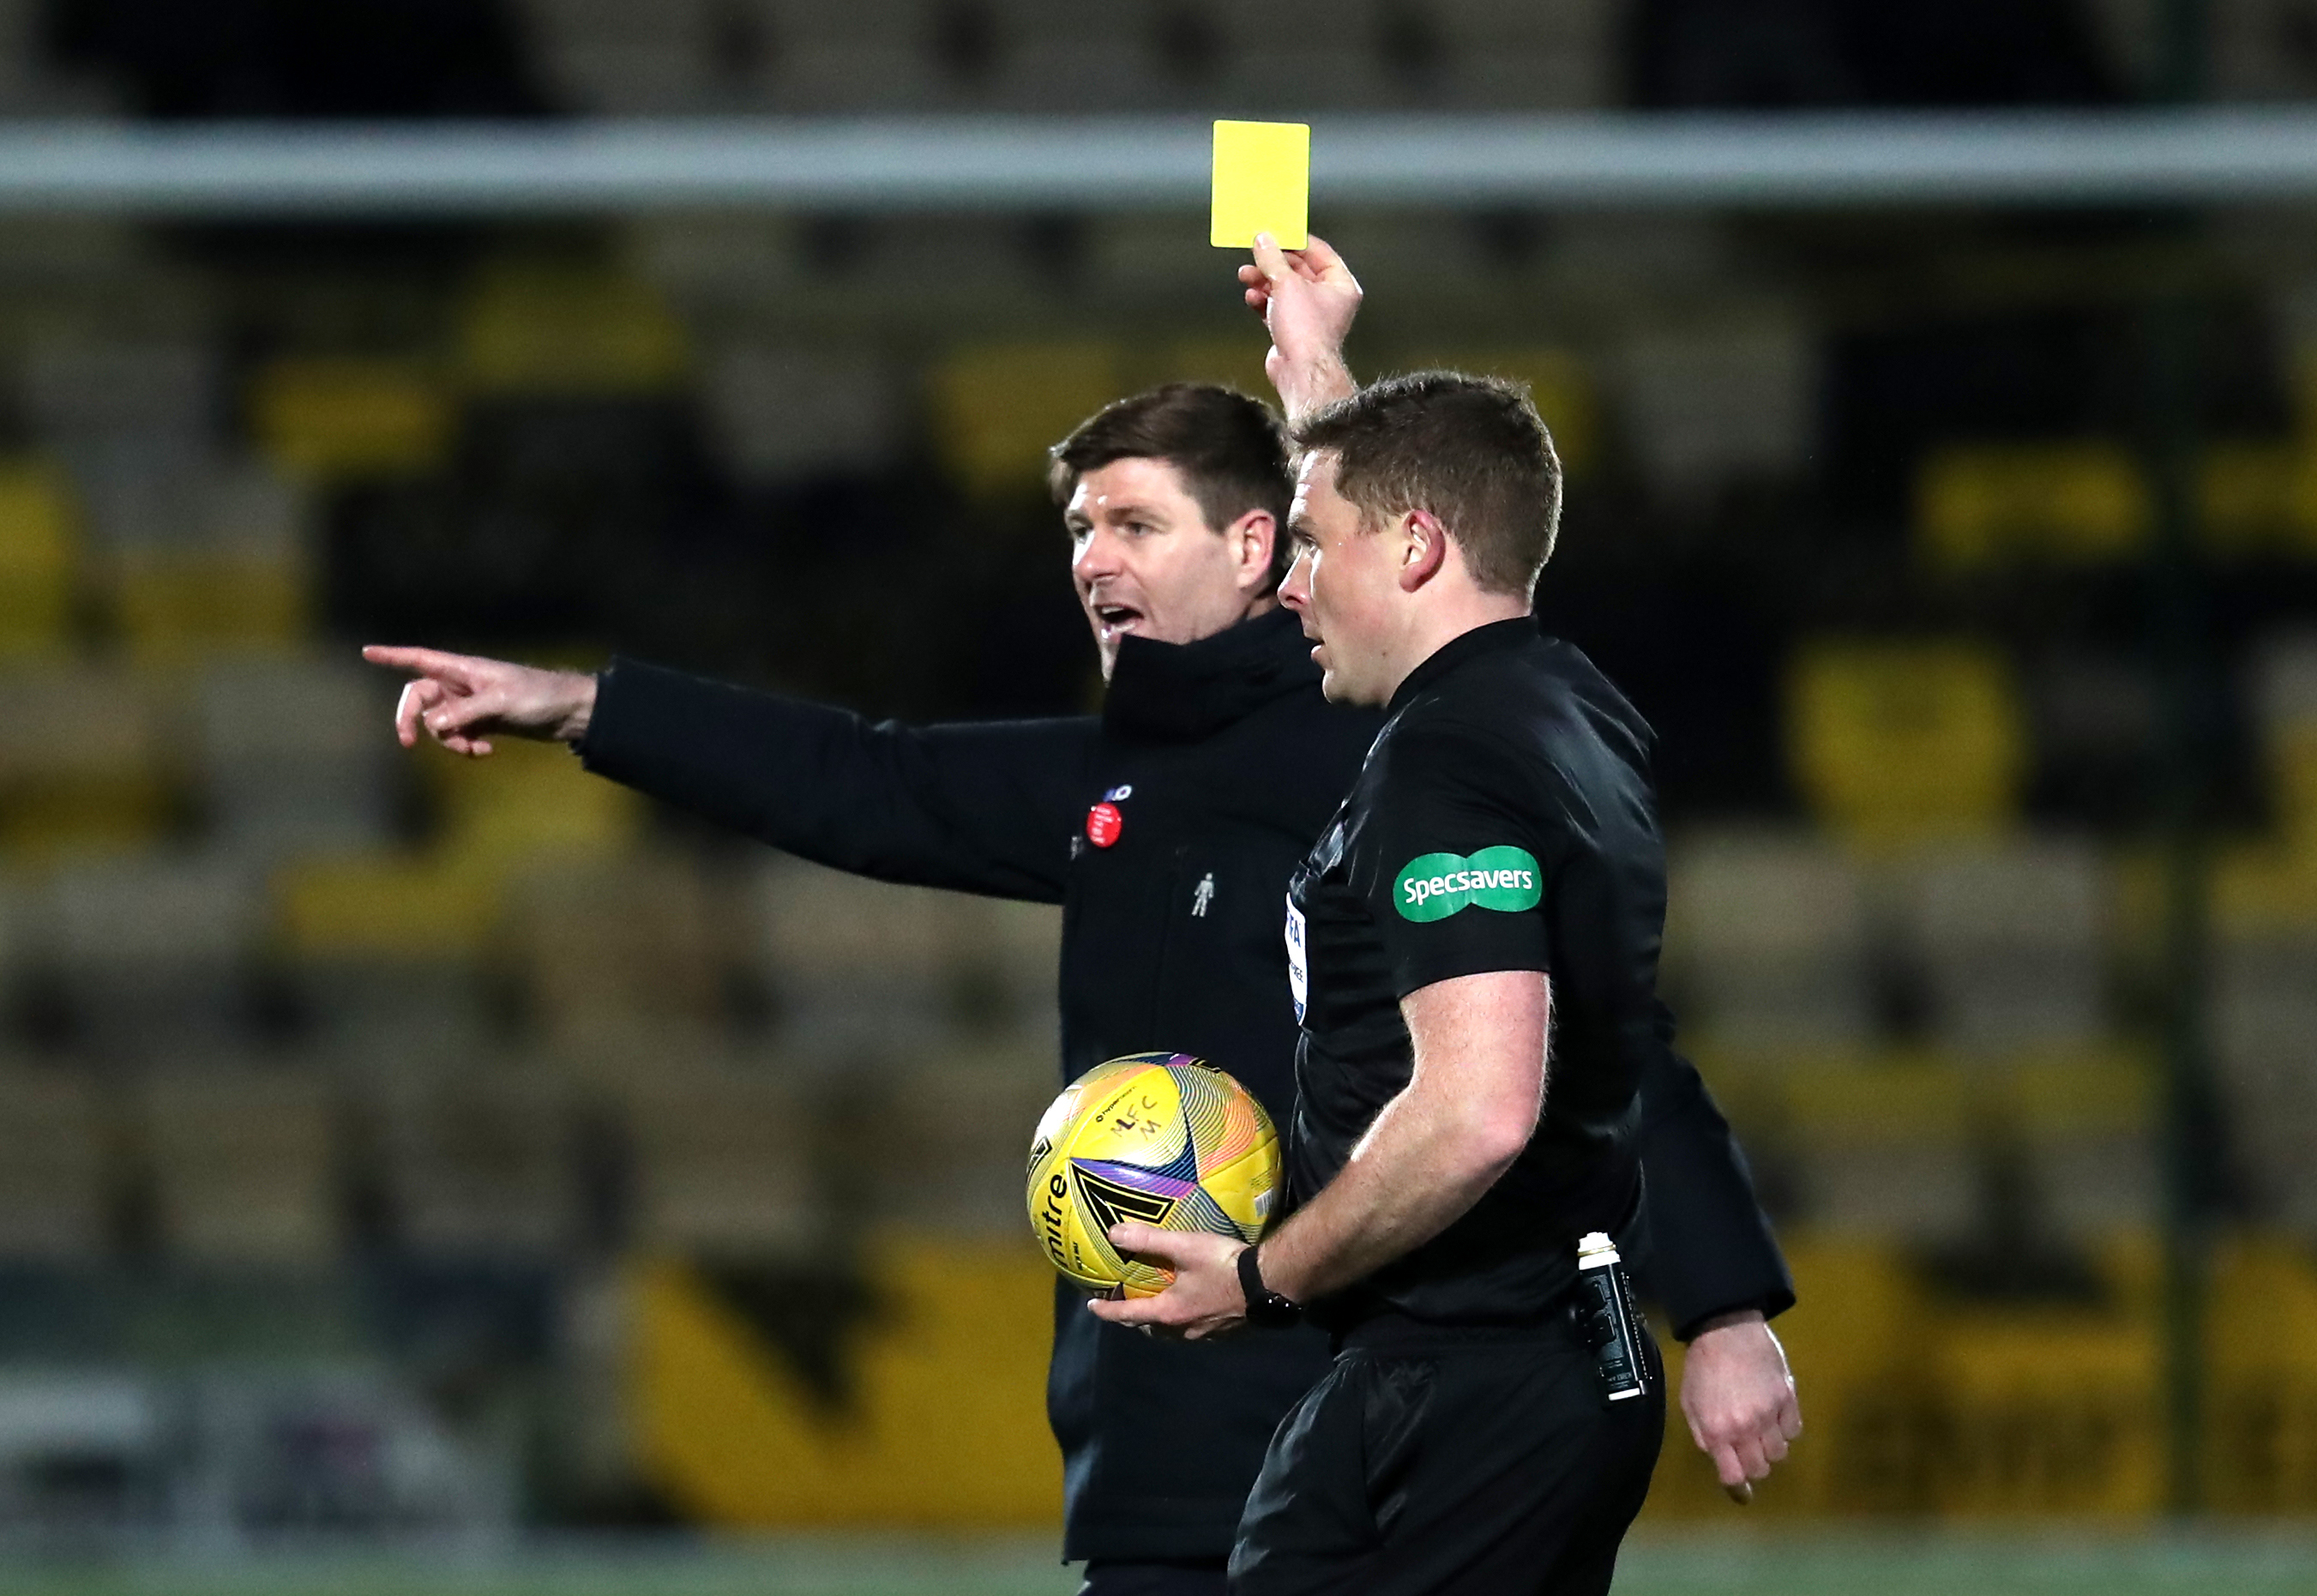 Steven Gerrard hits referee John Beaton while Rangers beats Livingston